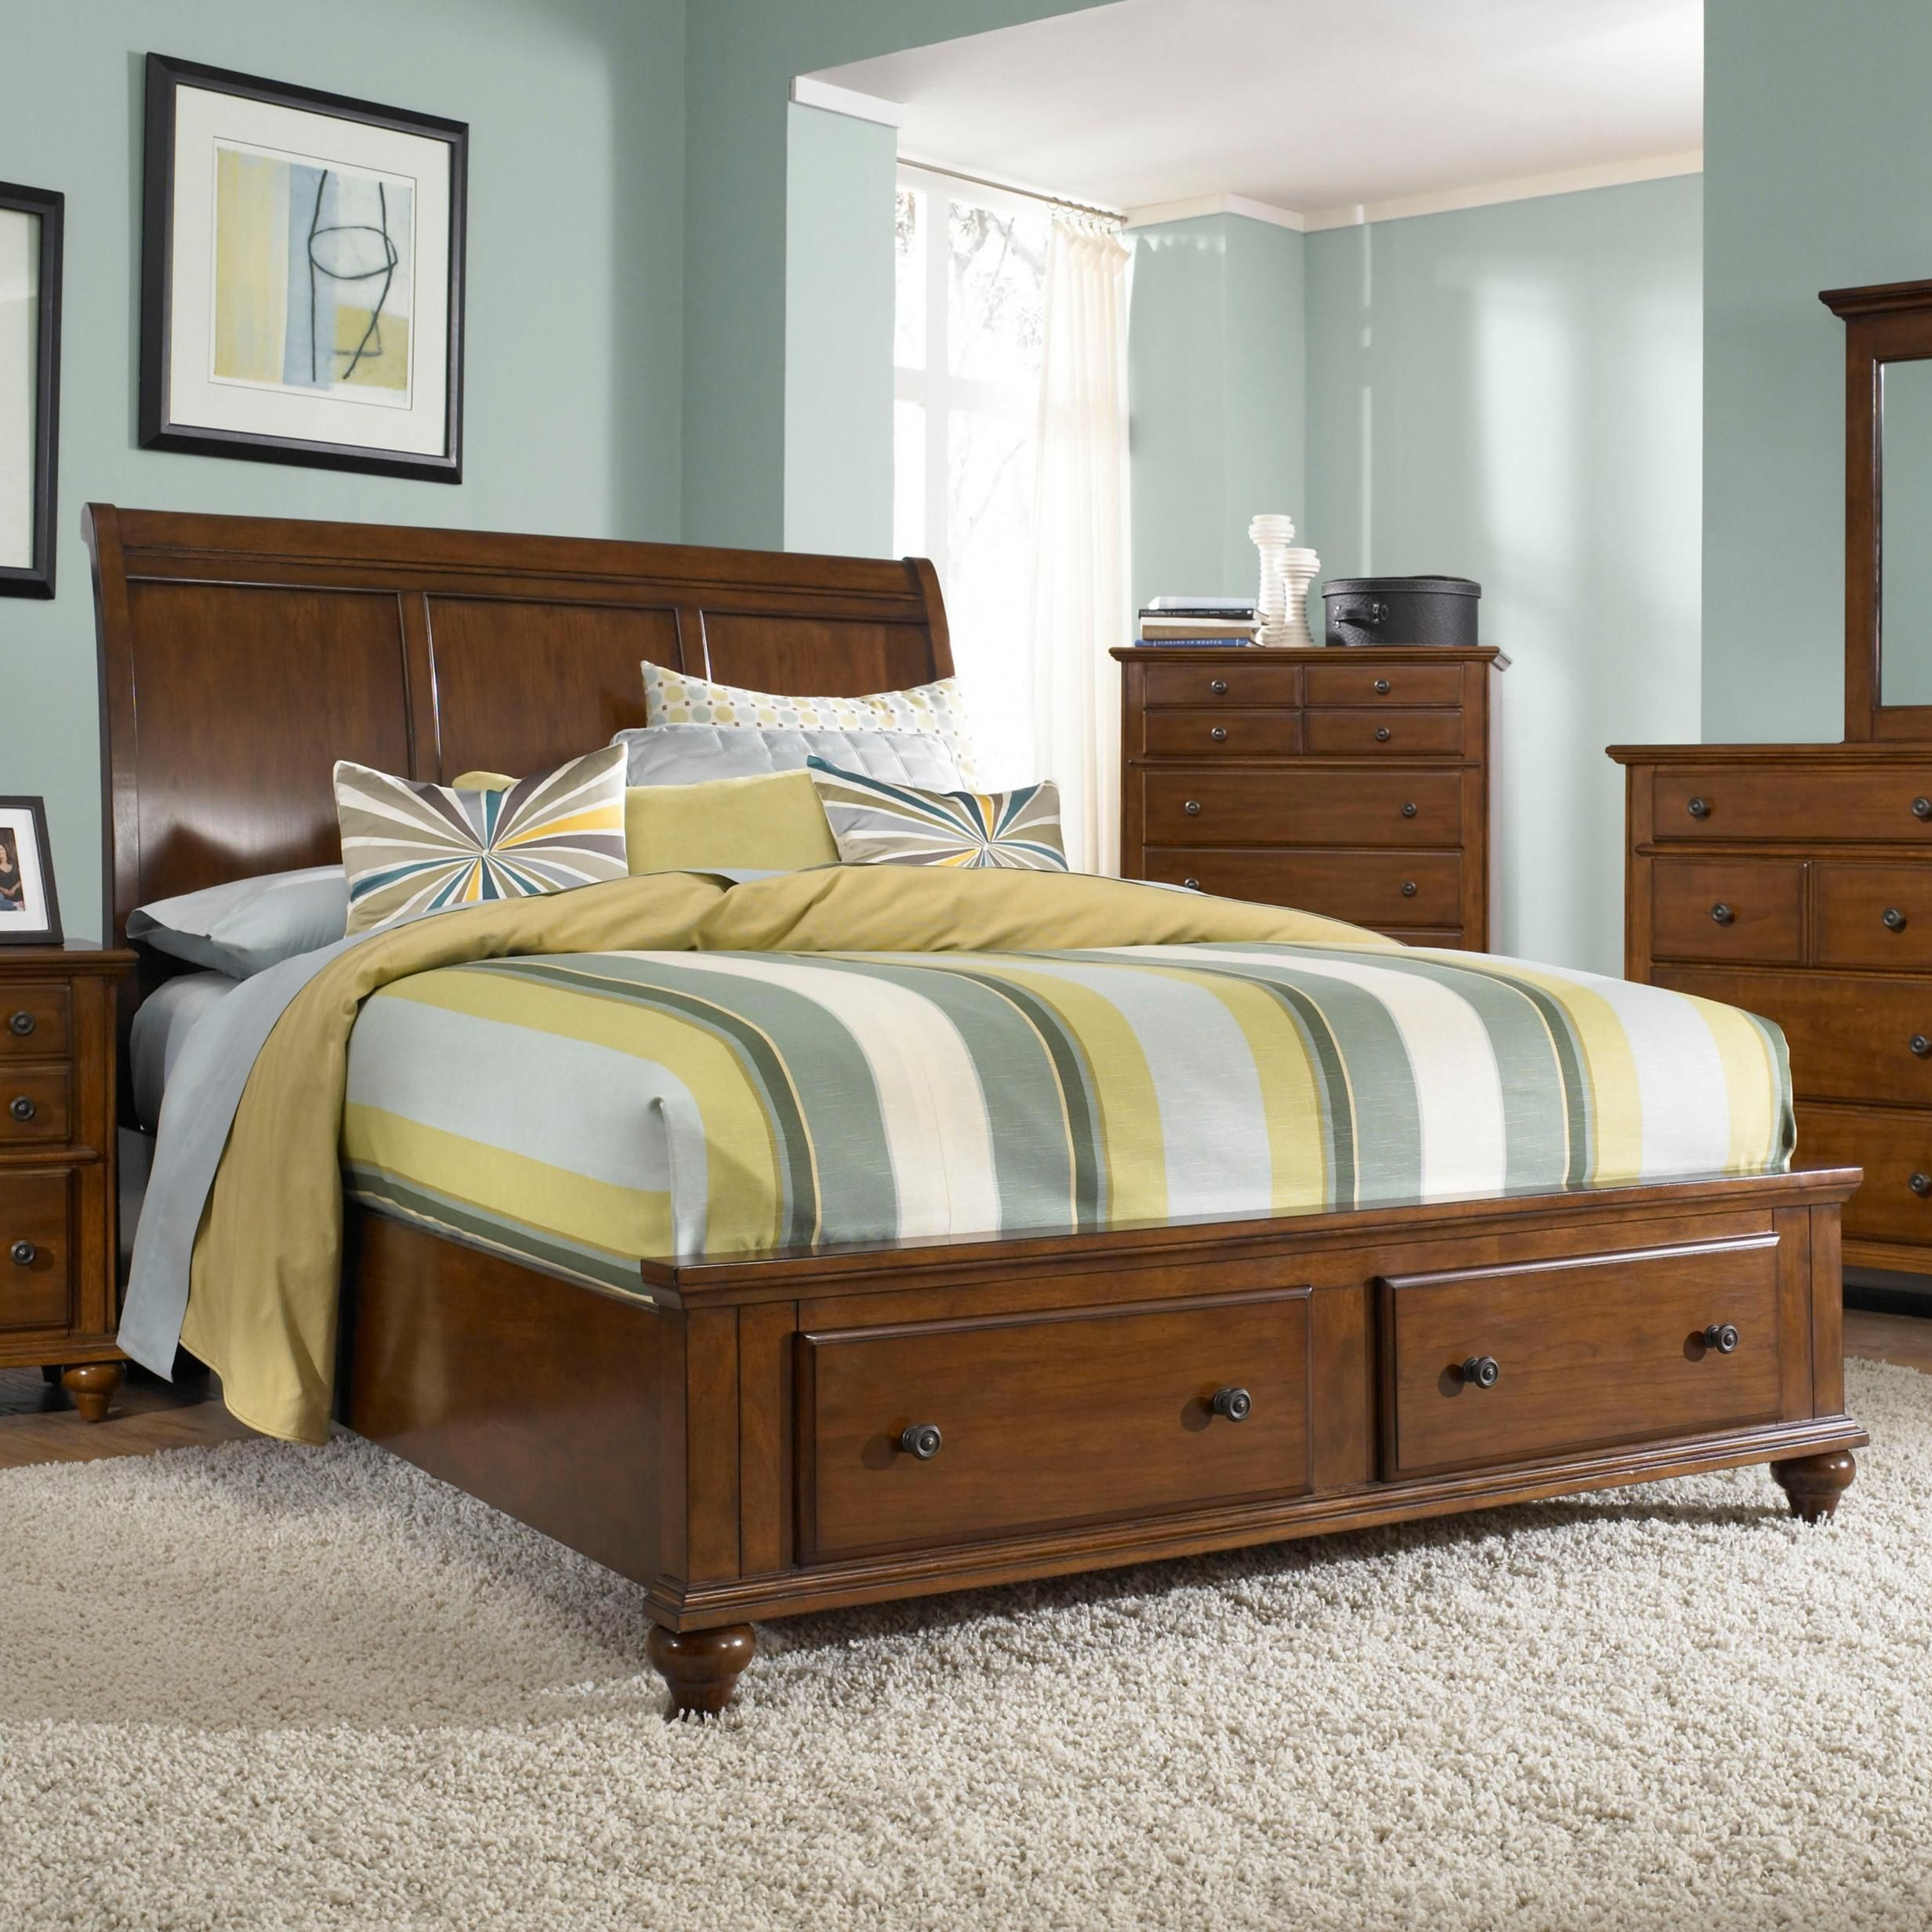 Hayden Place King Sleigh Bed With Storage Footboard By Broyhill Furniture Broyhill Furniture